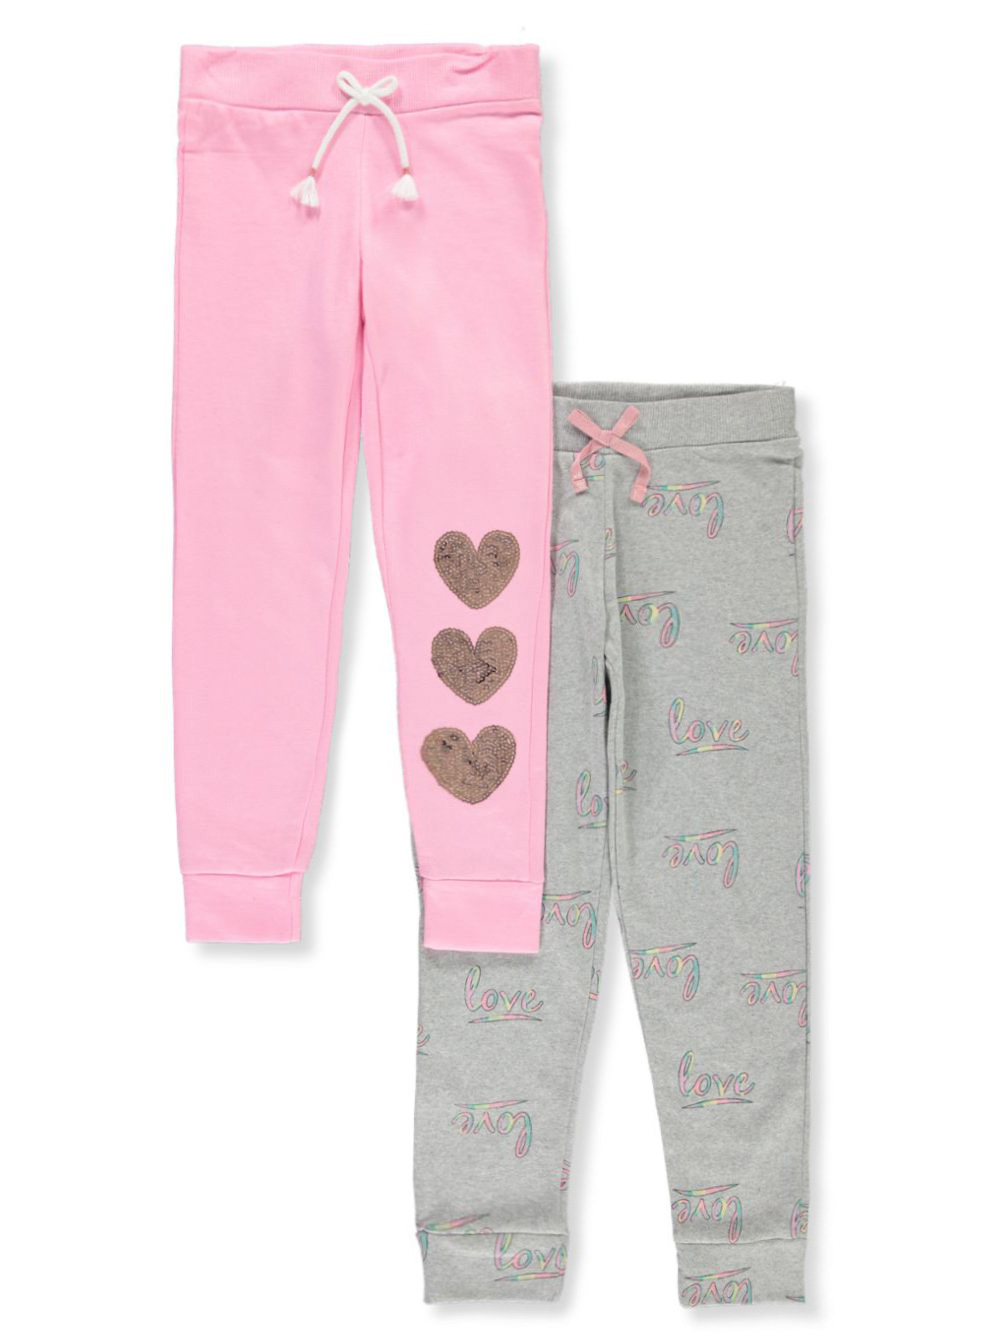 XOXO One Step Up Toddler Girls Joggers Sweat Pants 2T 3T 4 5T 5-6 6X Small NWT